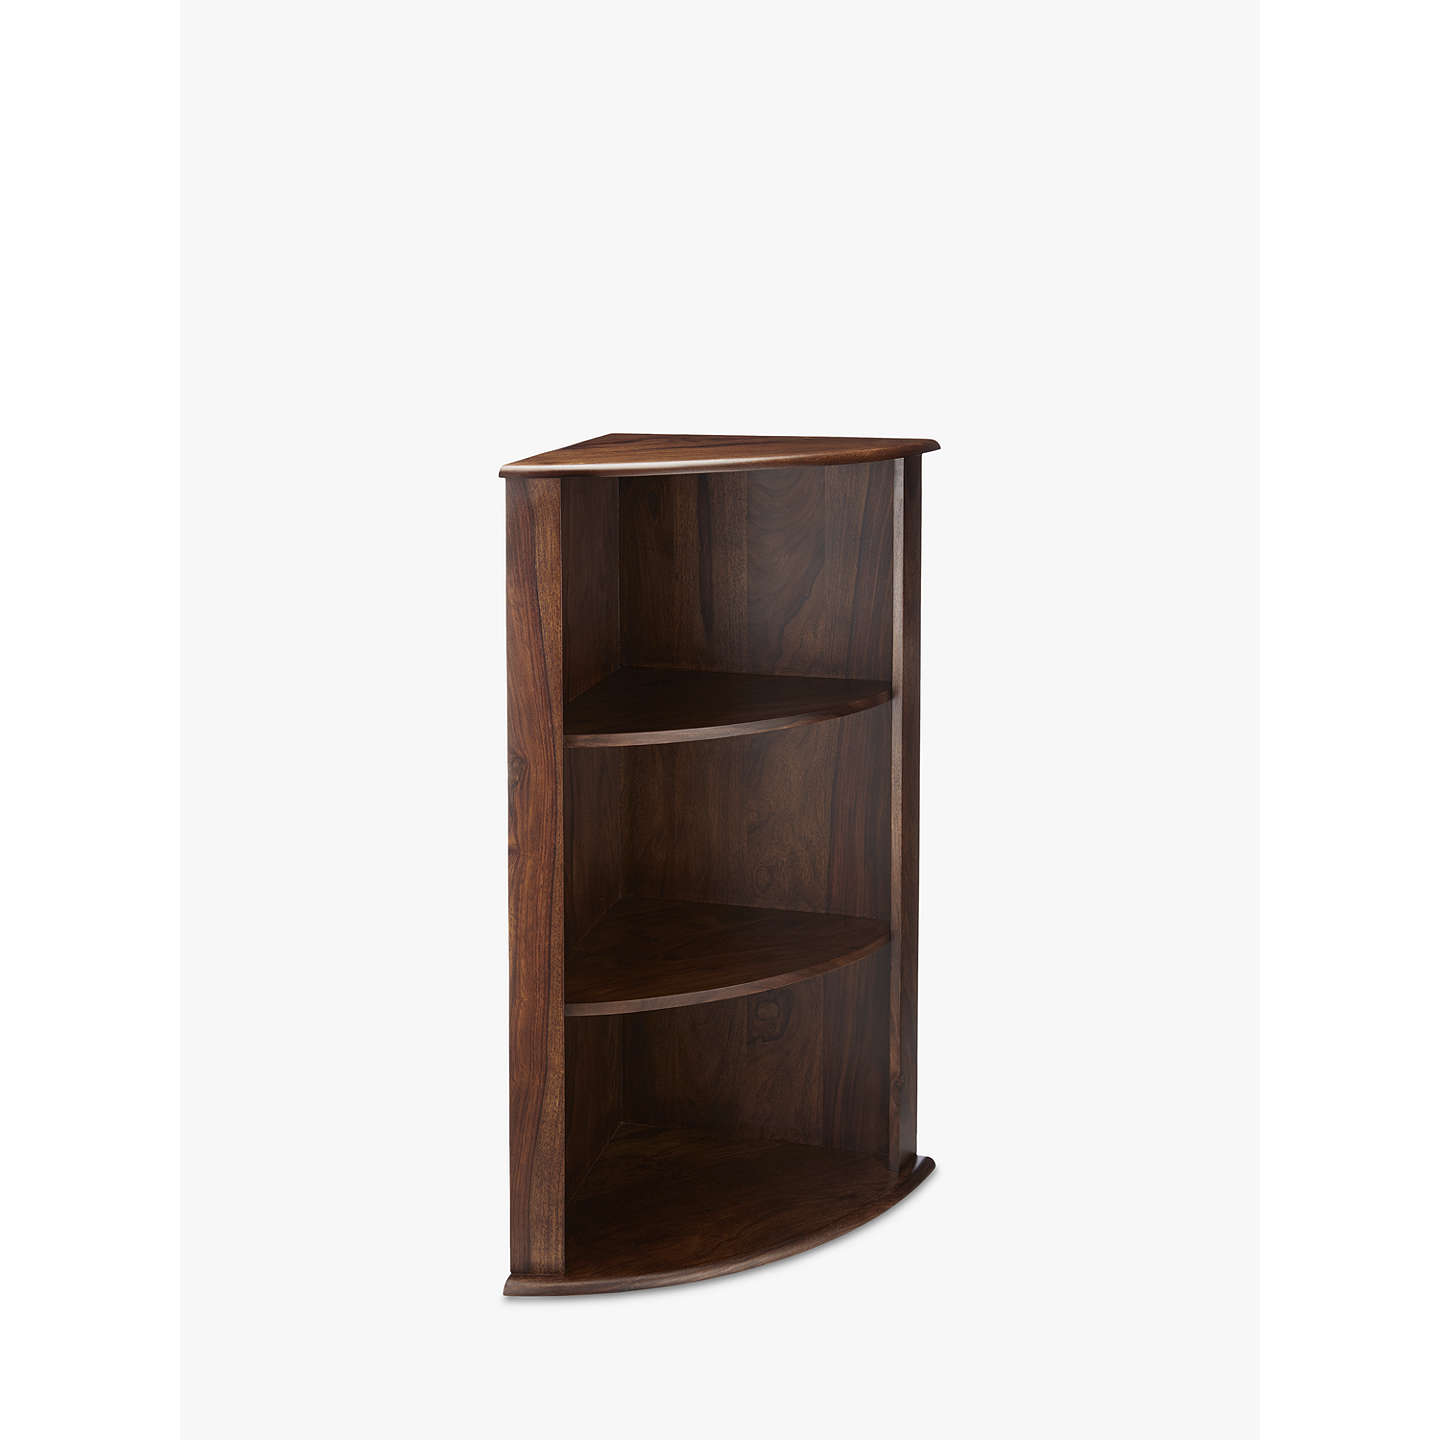 corner shelving units lewis maharani corner shelf unit at lewis 13997